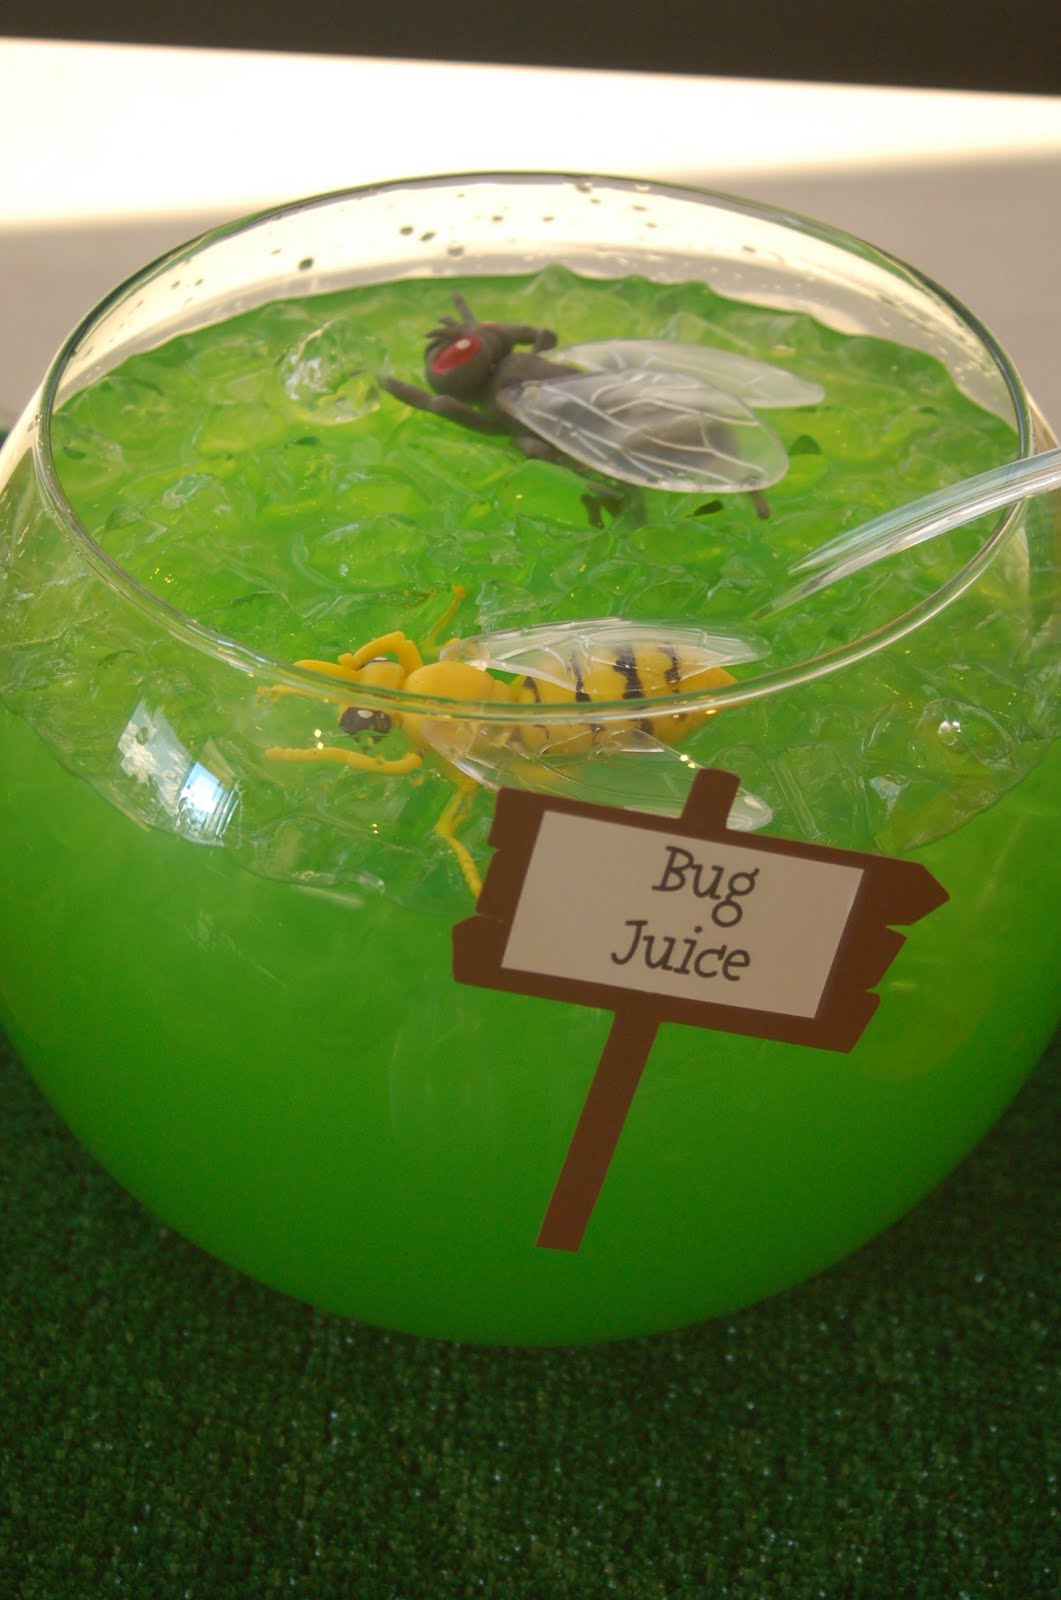 Bug Juice And Other Theme Party Ideas From Casa Sonrisa